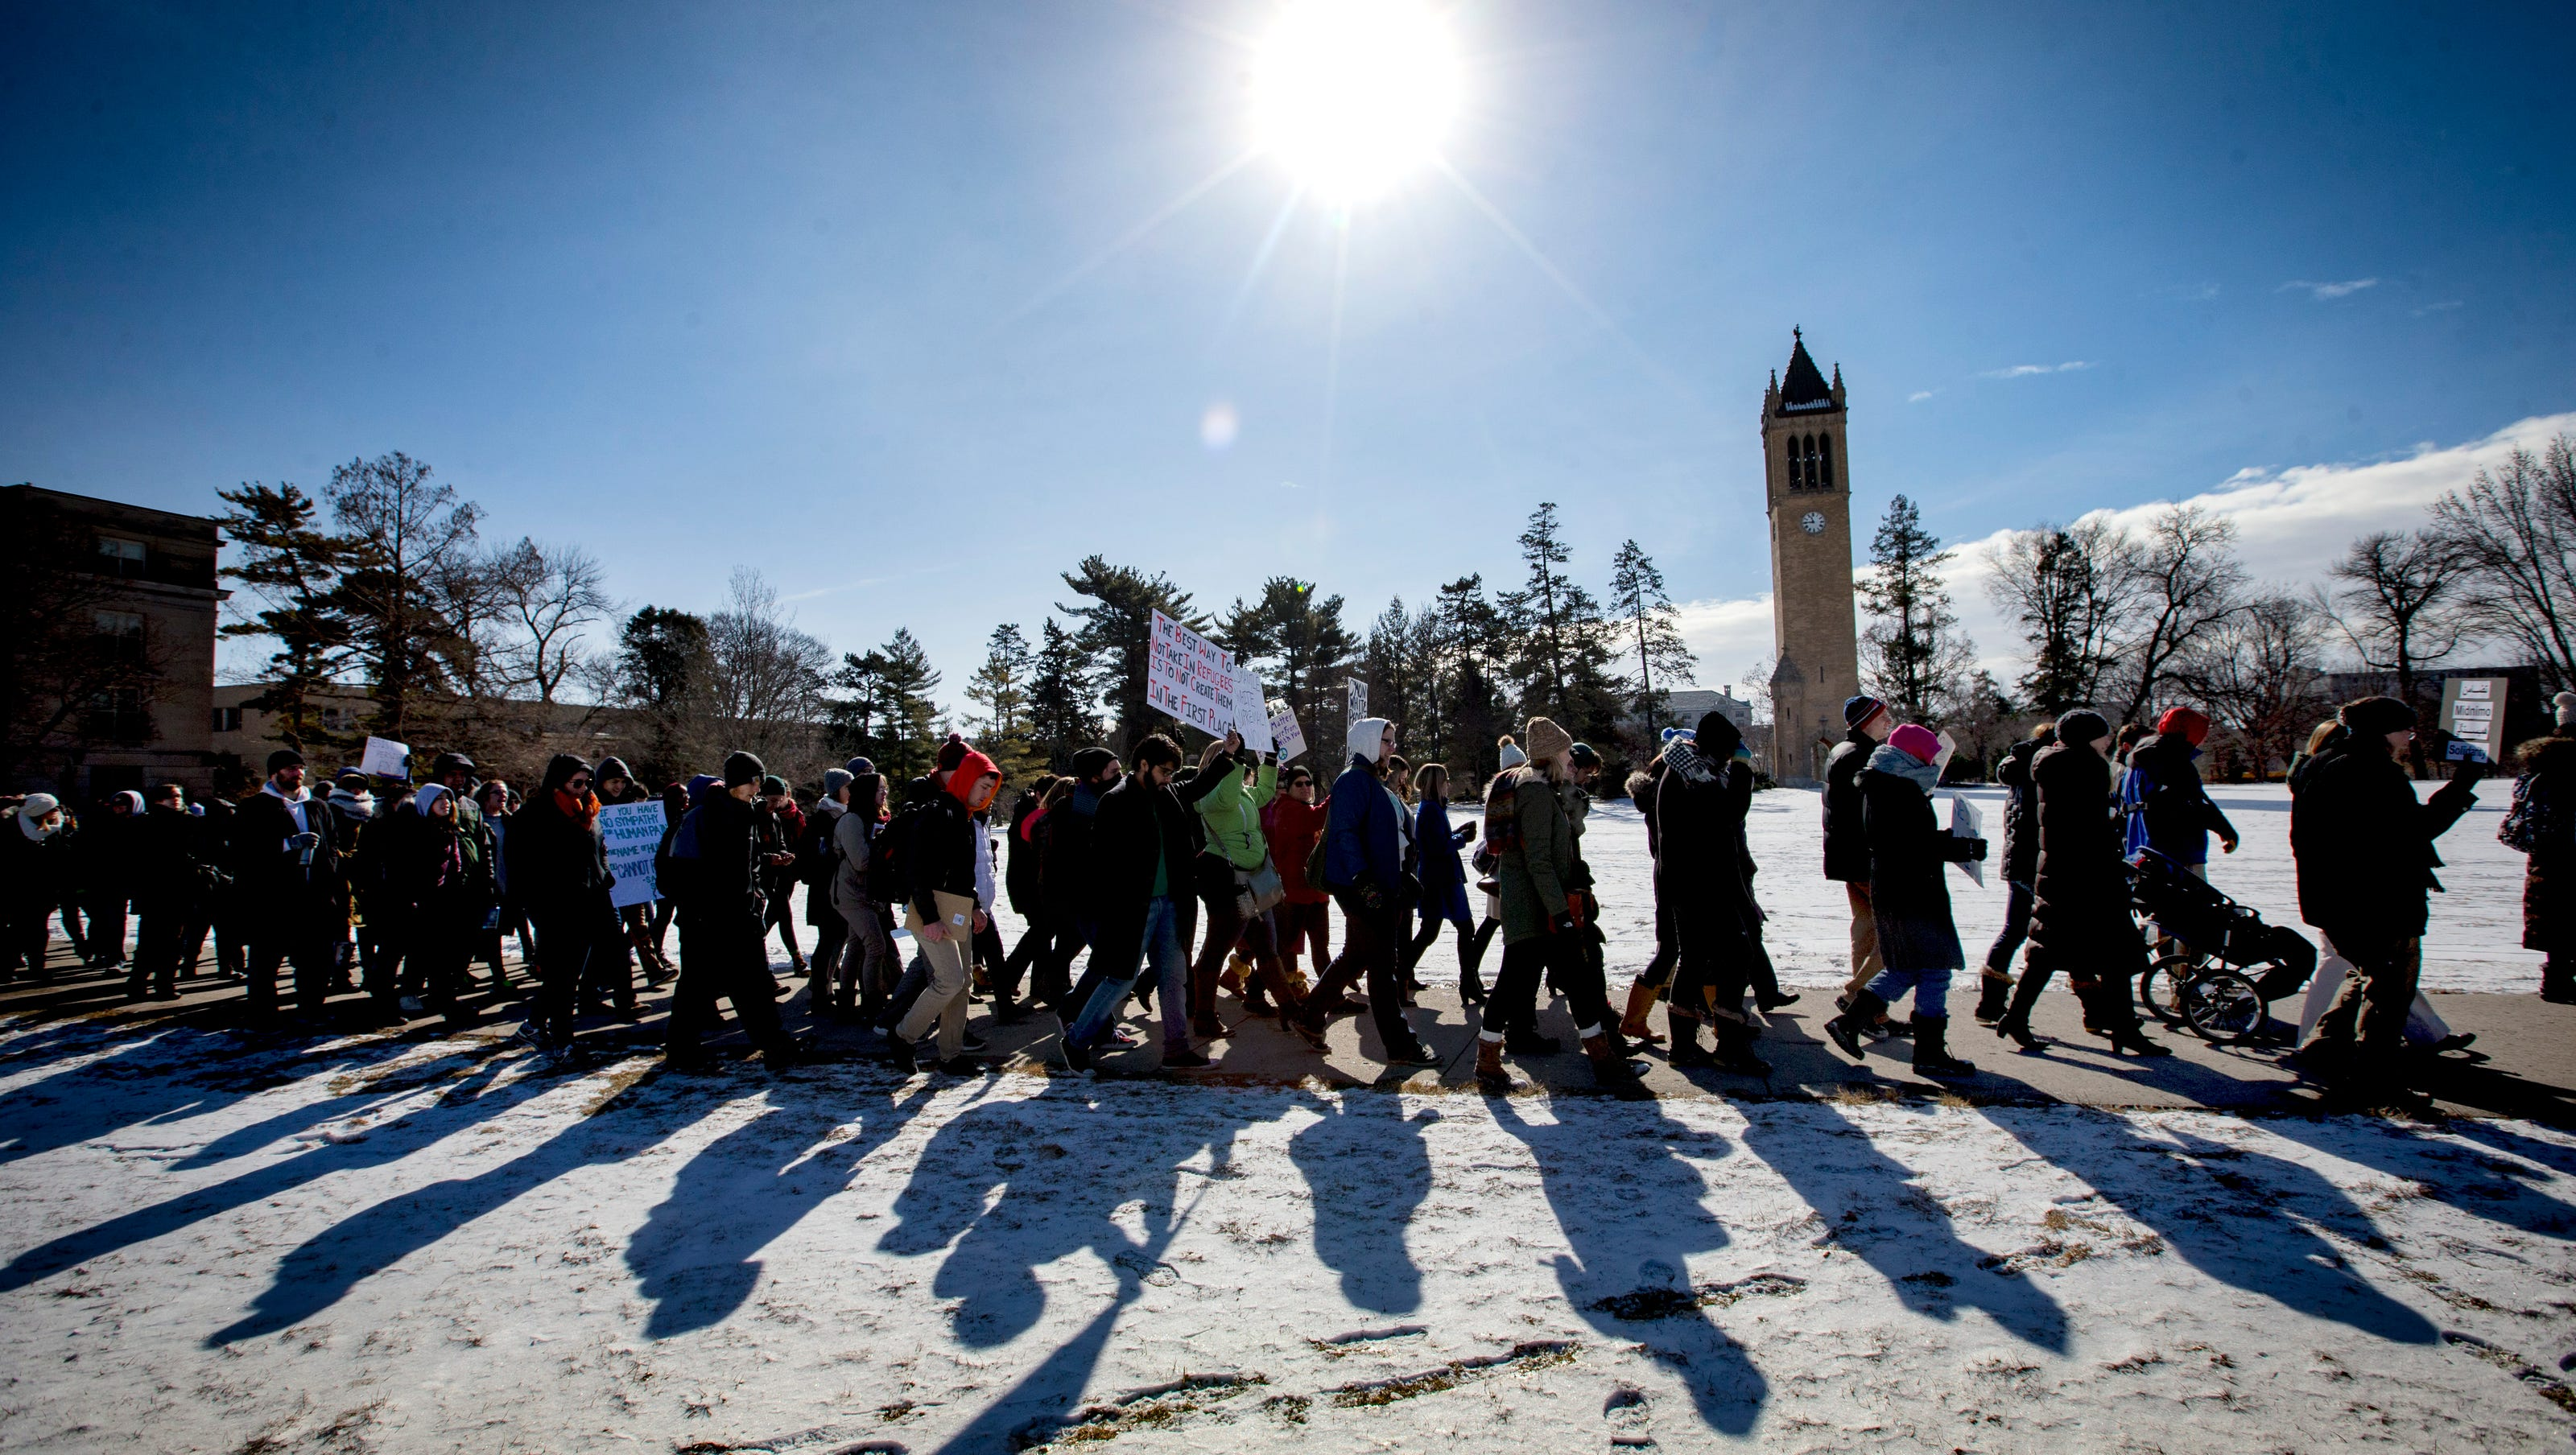 Solidarity March At Isu Offers Support Amid Trump S Orders